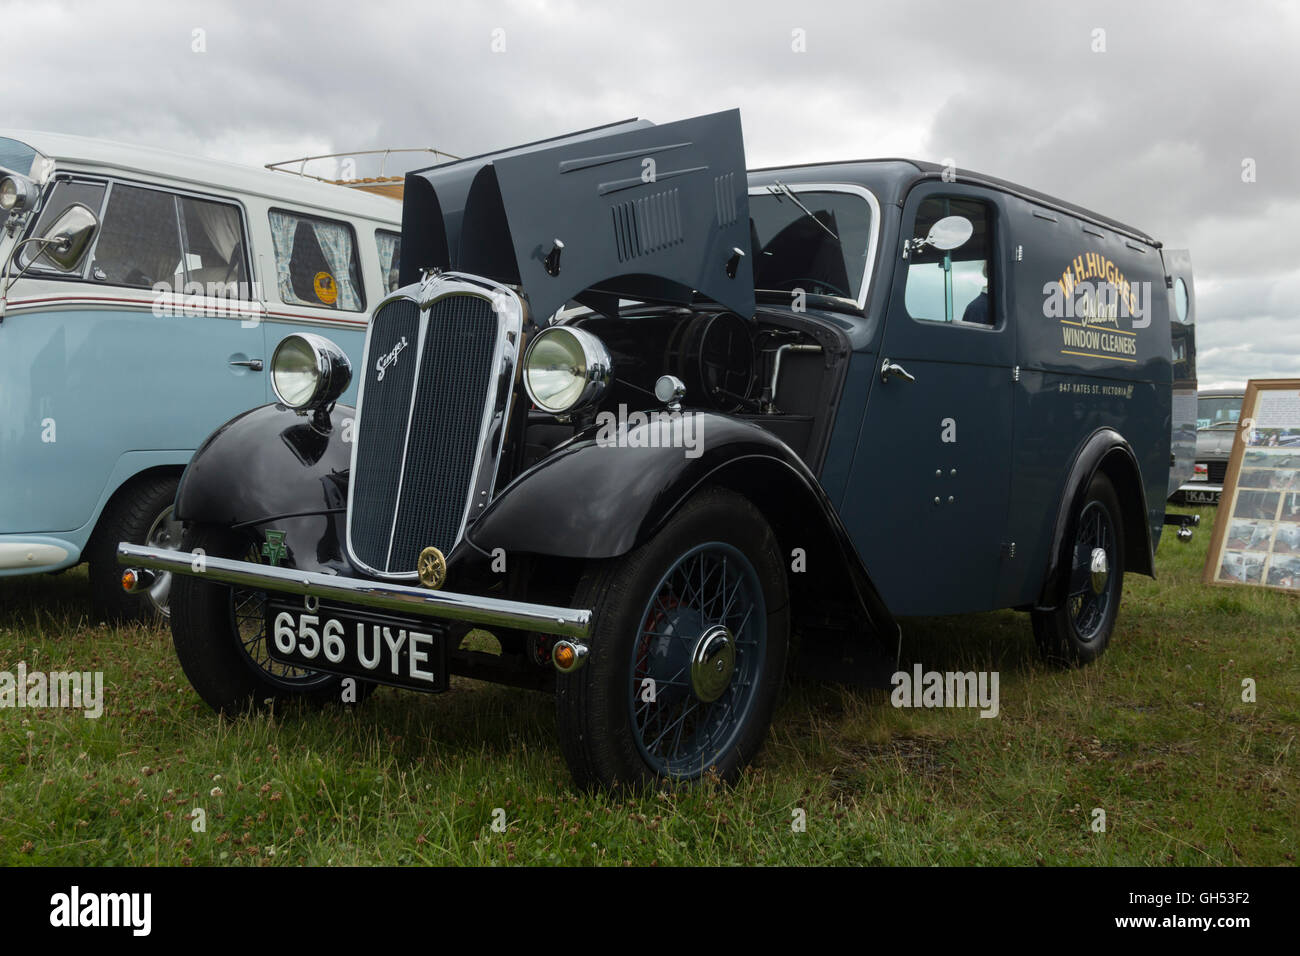 1930s Commercial Vehicle Stock Photos Amp 1930s Commercial